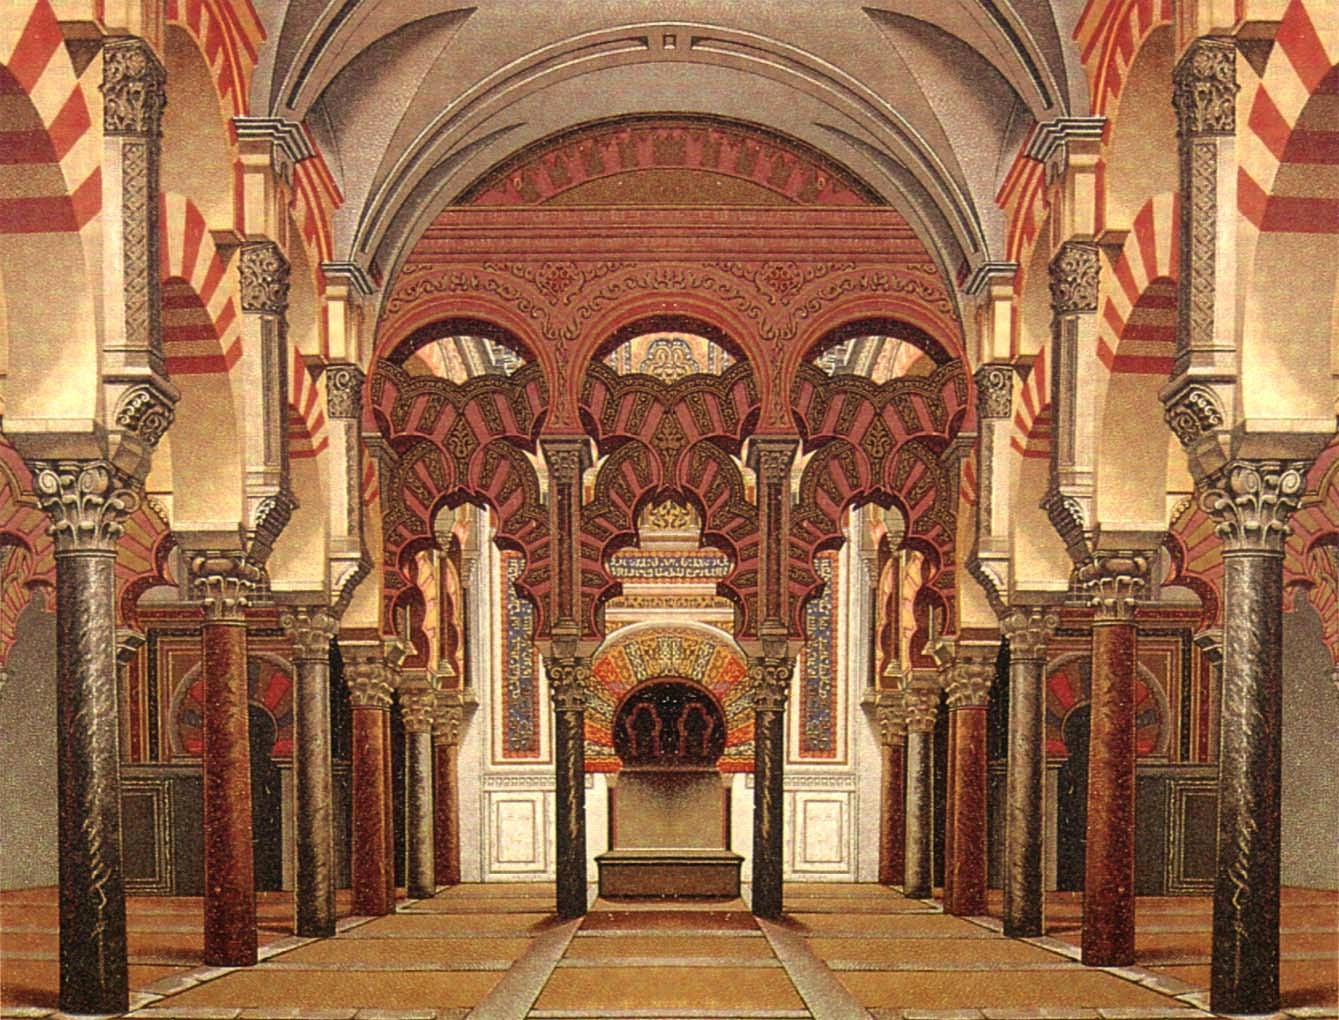 Unusual Historicals: Wonders And Marvels: The Mezquita Of